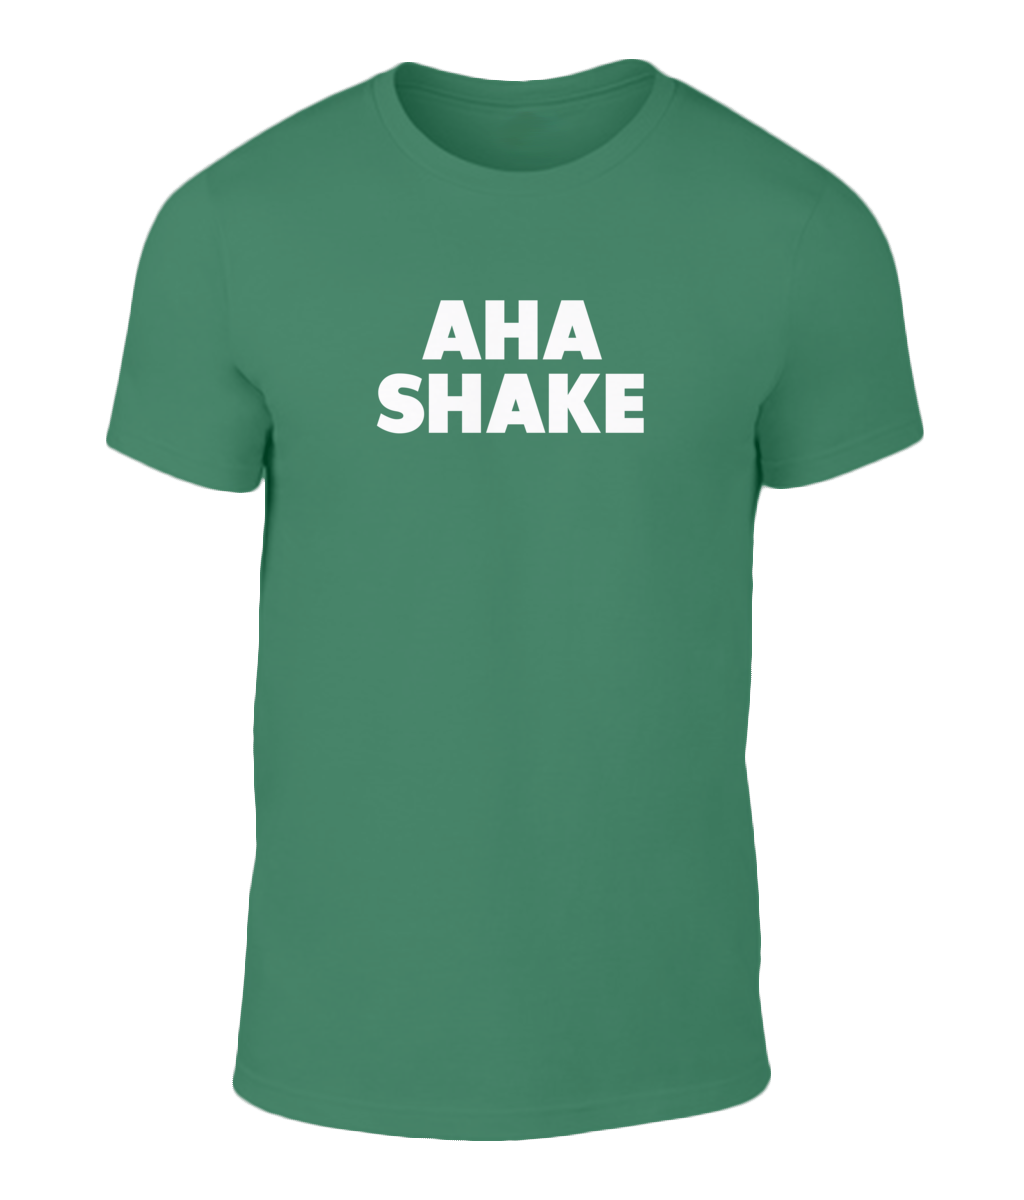 Aha Shake - Kings of Leon - Lyric T-Shirt